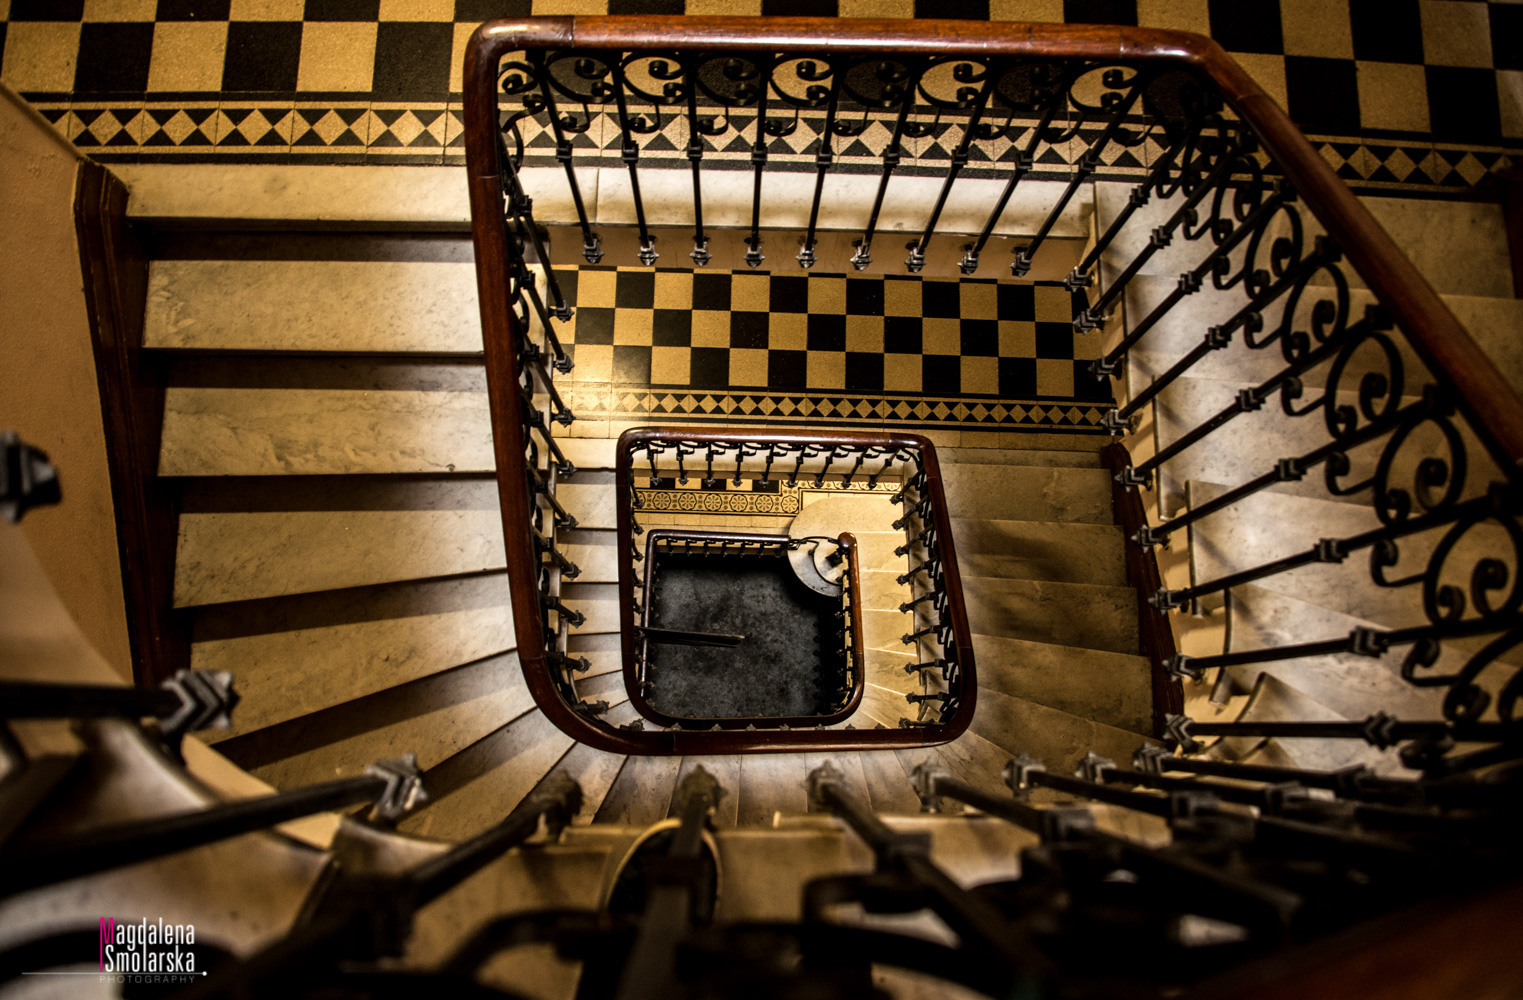 London & Brighton Portrait Photographer- French staircase with Magdalena Smolarska photography